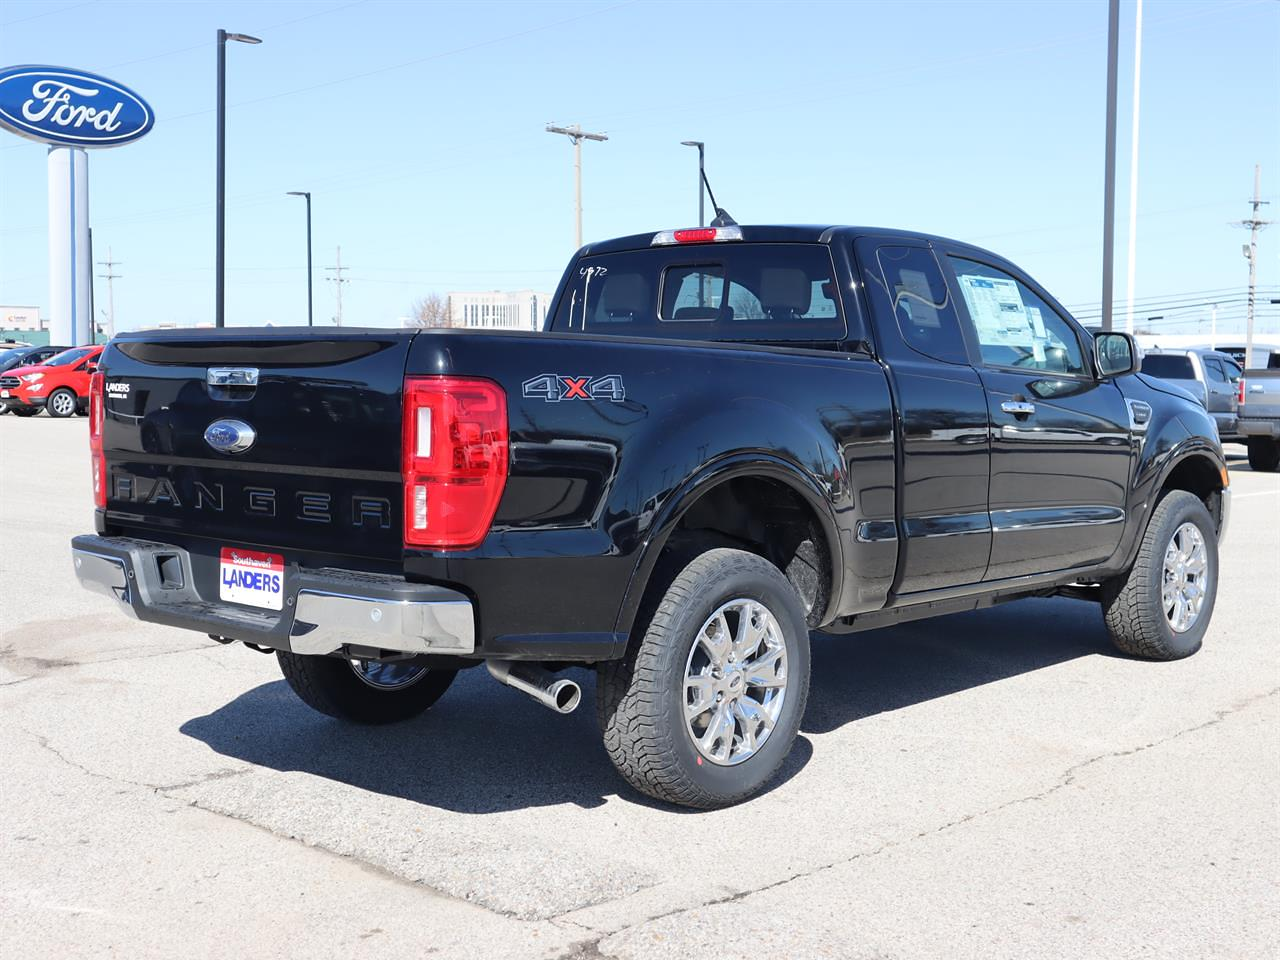 2021 Ford Ranger Super Cab 4x4, Pickup #21ST1580 - photo 1